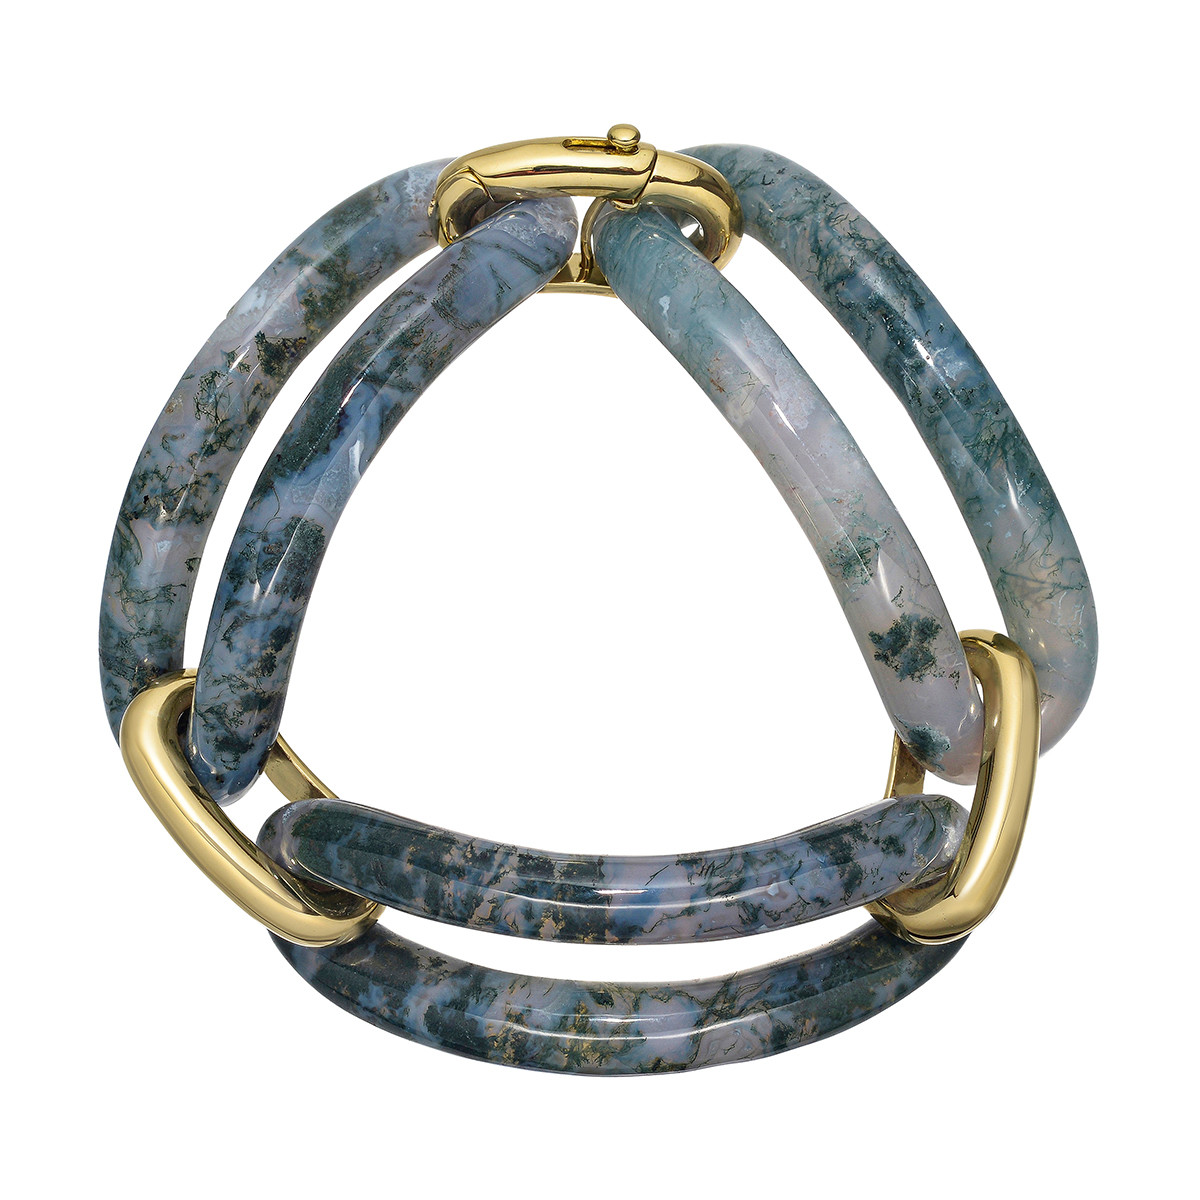 18k Yellow Gold & Green Agate Three-Link Bracelet